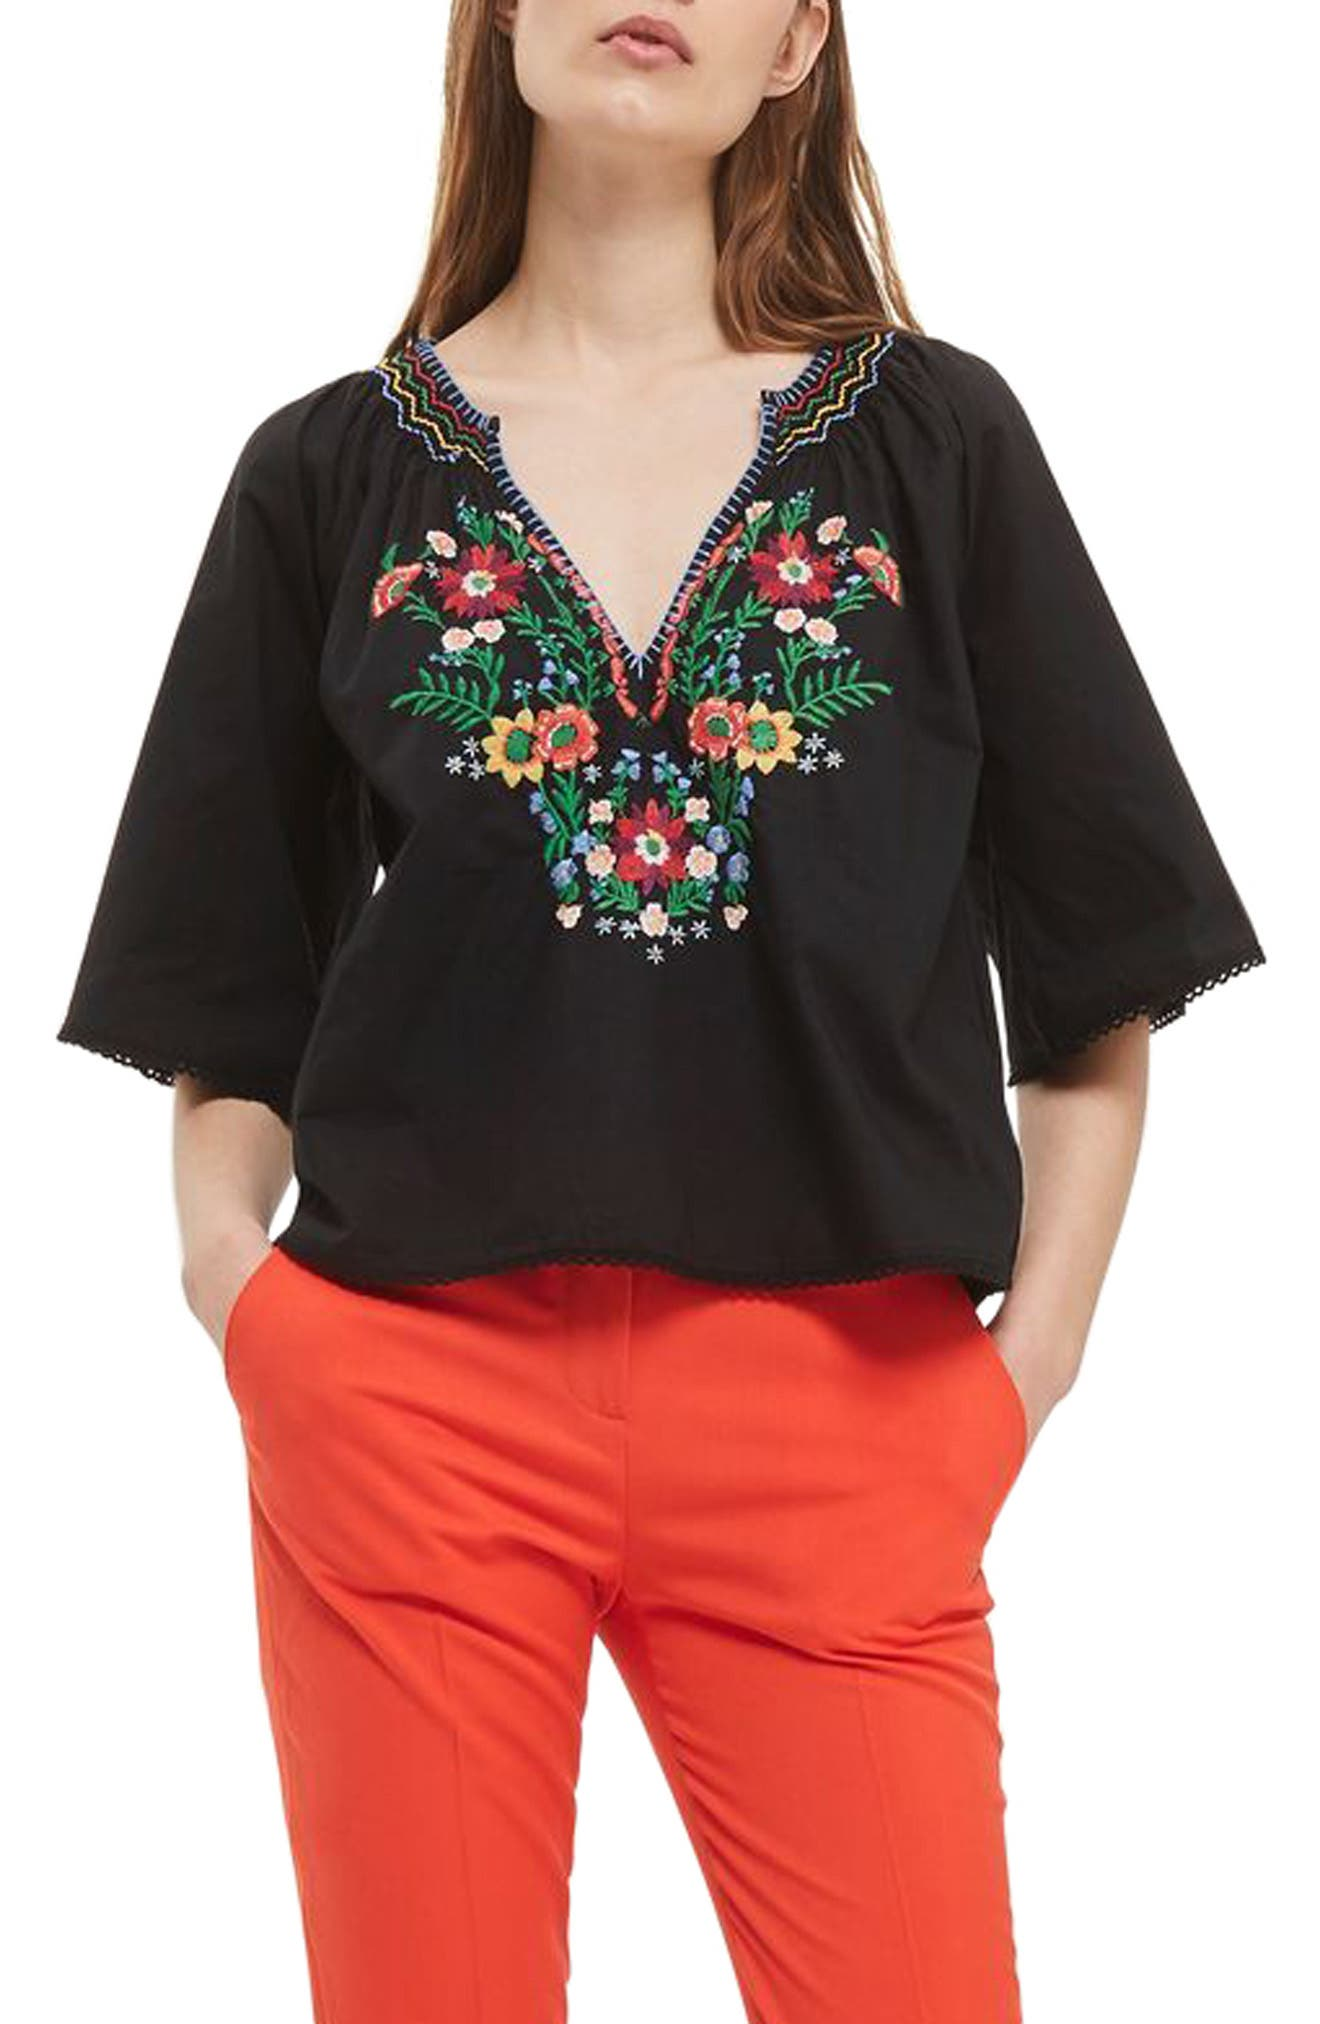 Topshop Embroidered Floral Top